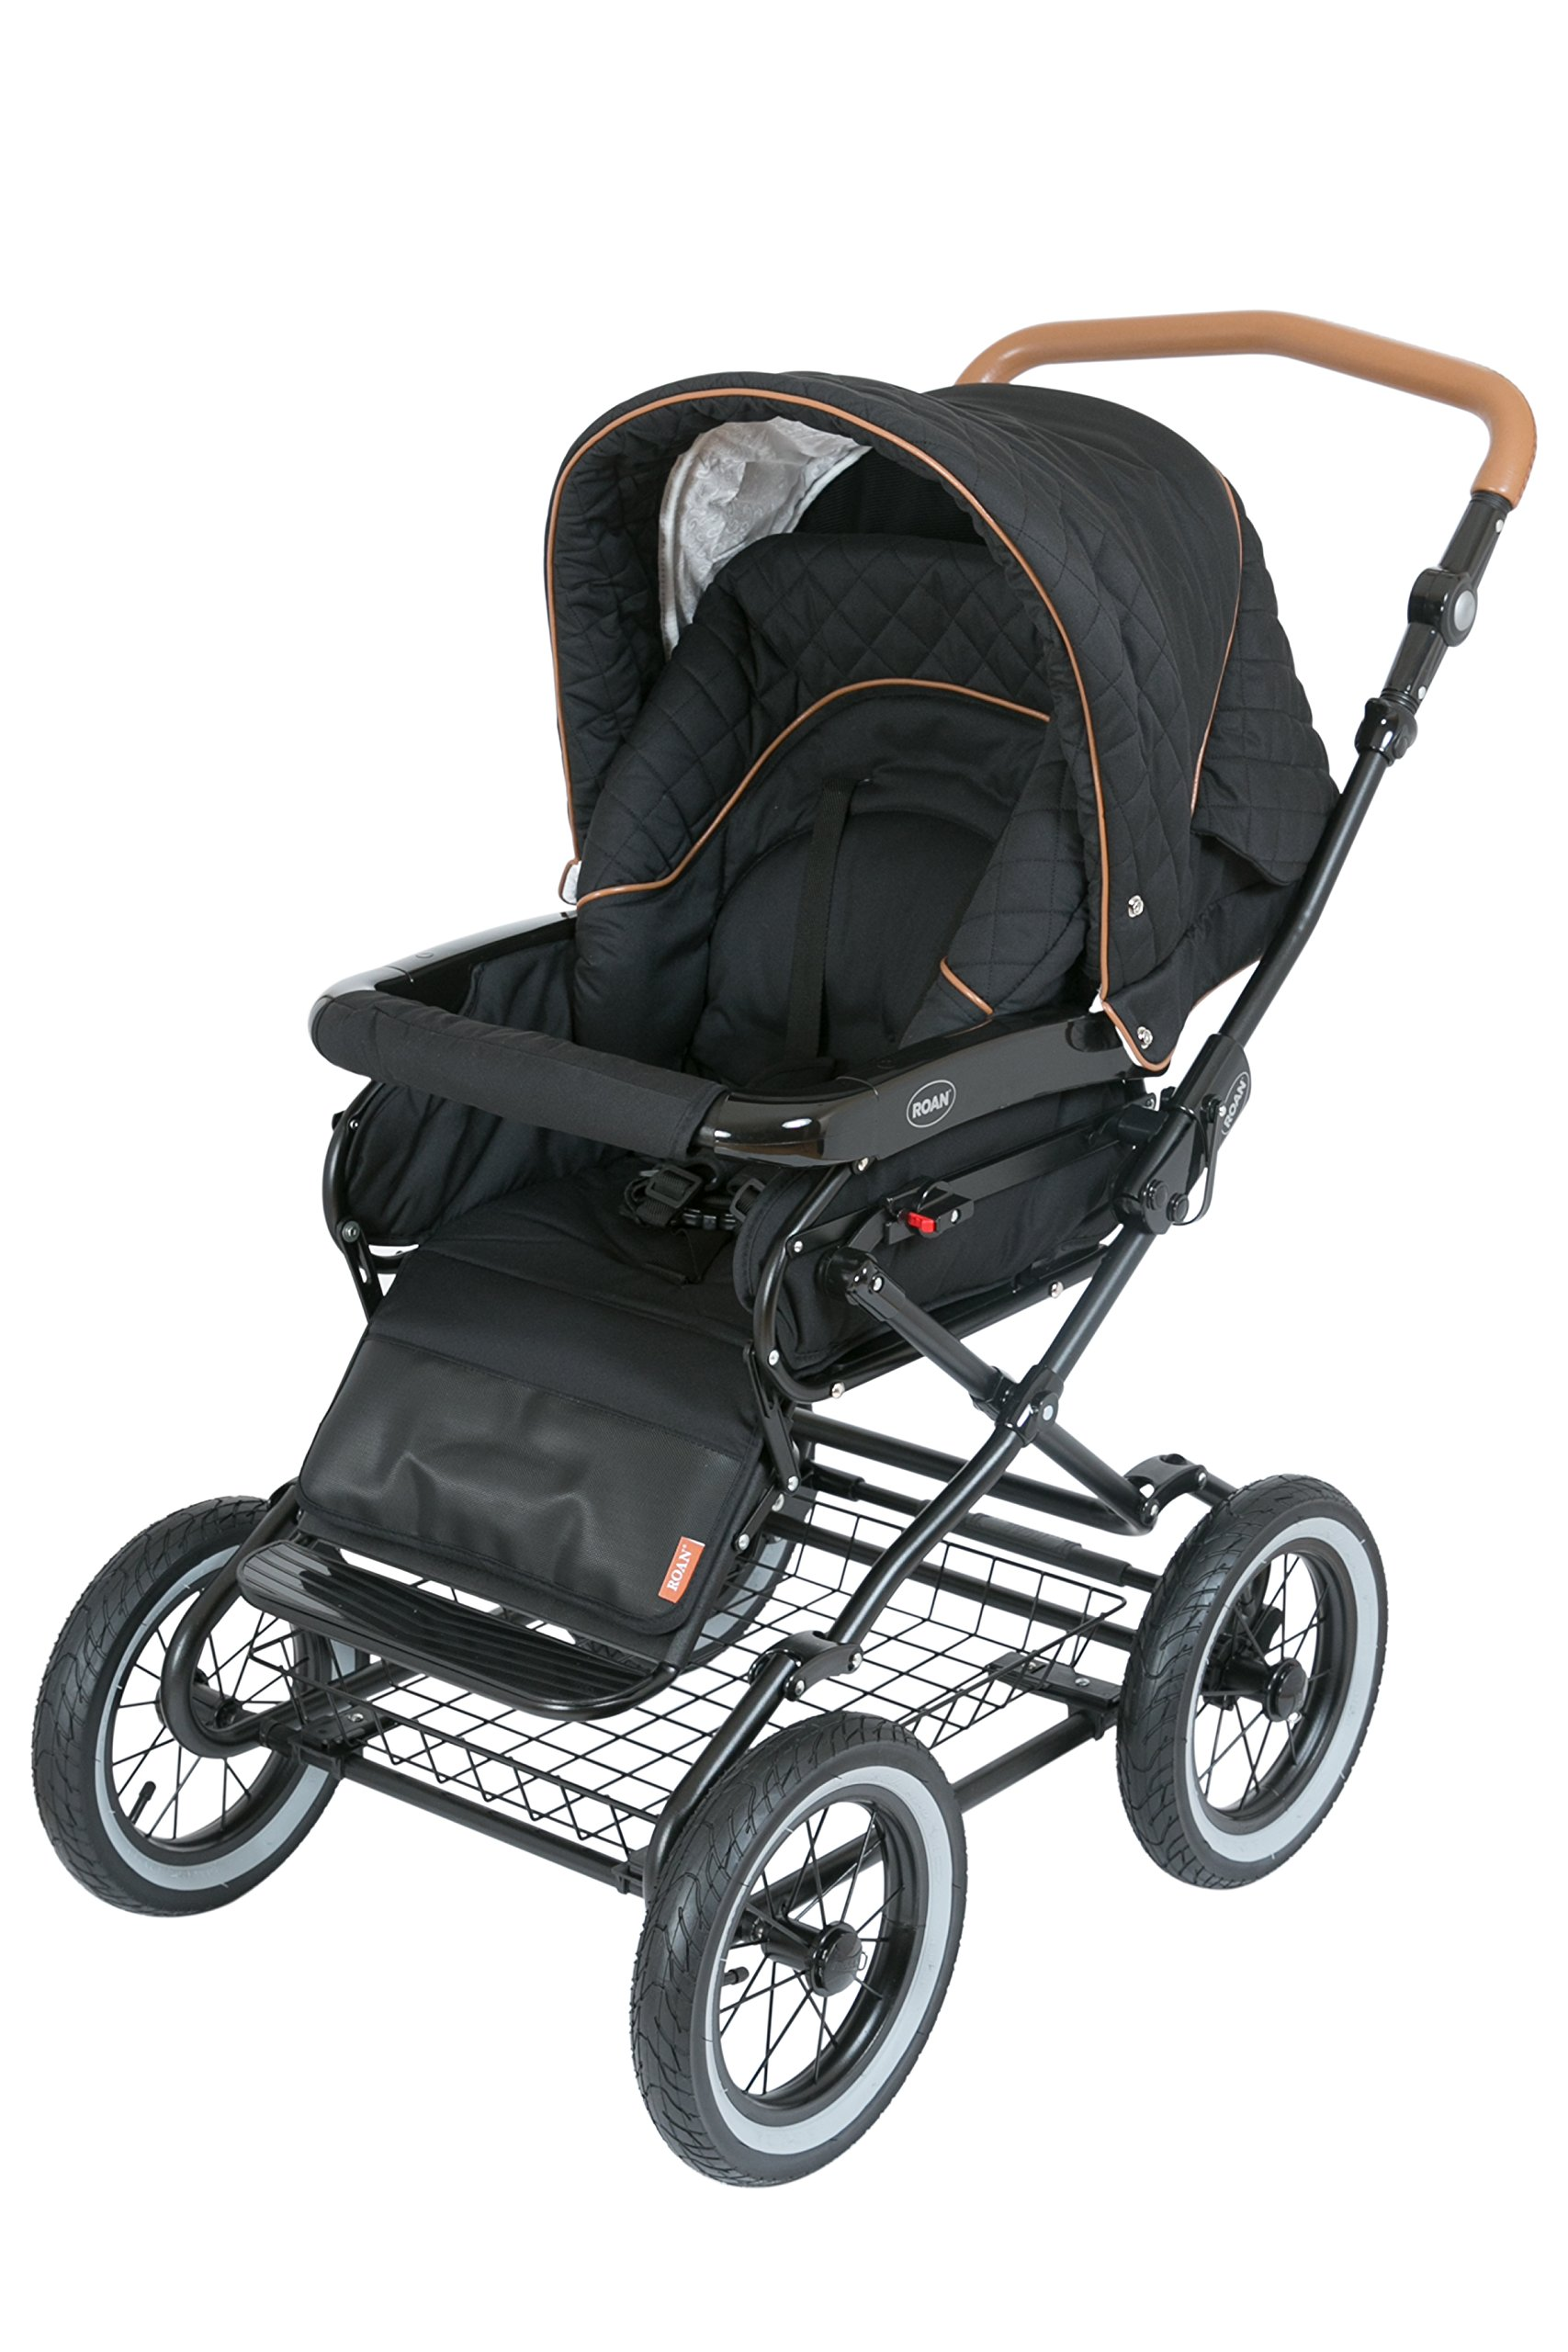 Luxury Roan Kortina 2-in-1 Pram Stroller Pushchair with Big Baby Bassinet and Toddler Reclining Seat with Five Point Safety System UV Proof Canopy and Storage Basket for child up to 3 year (graphite) by ROAN (Image #4)